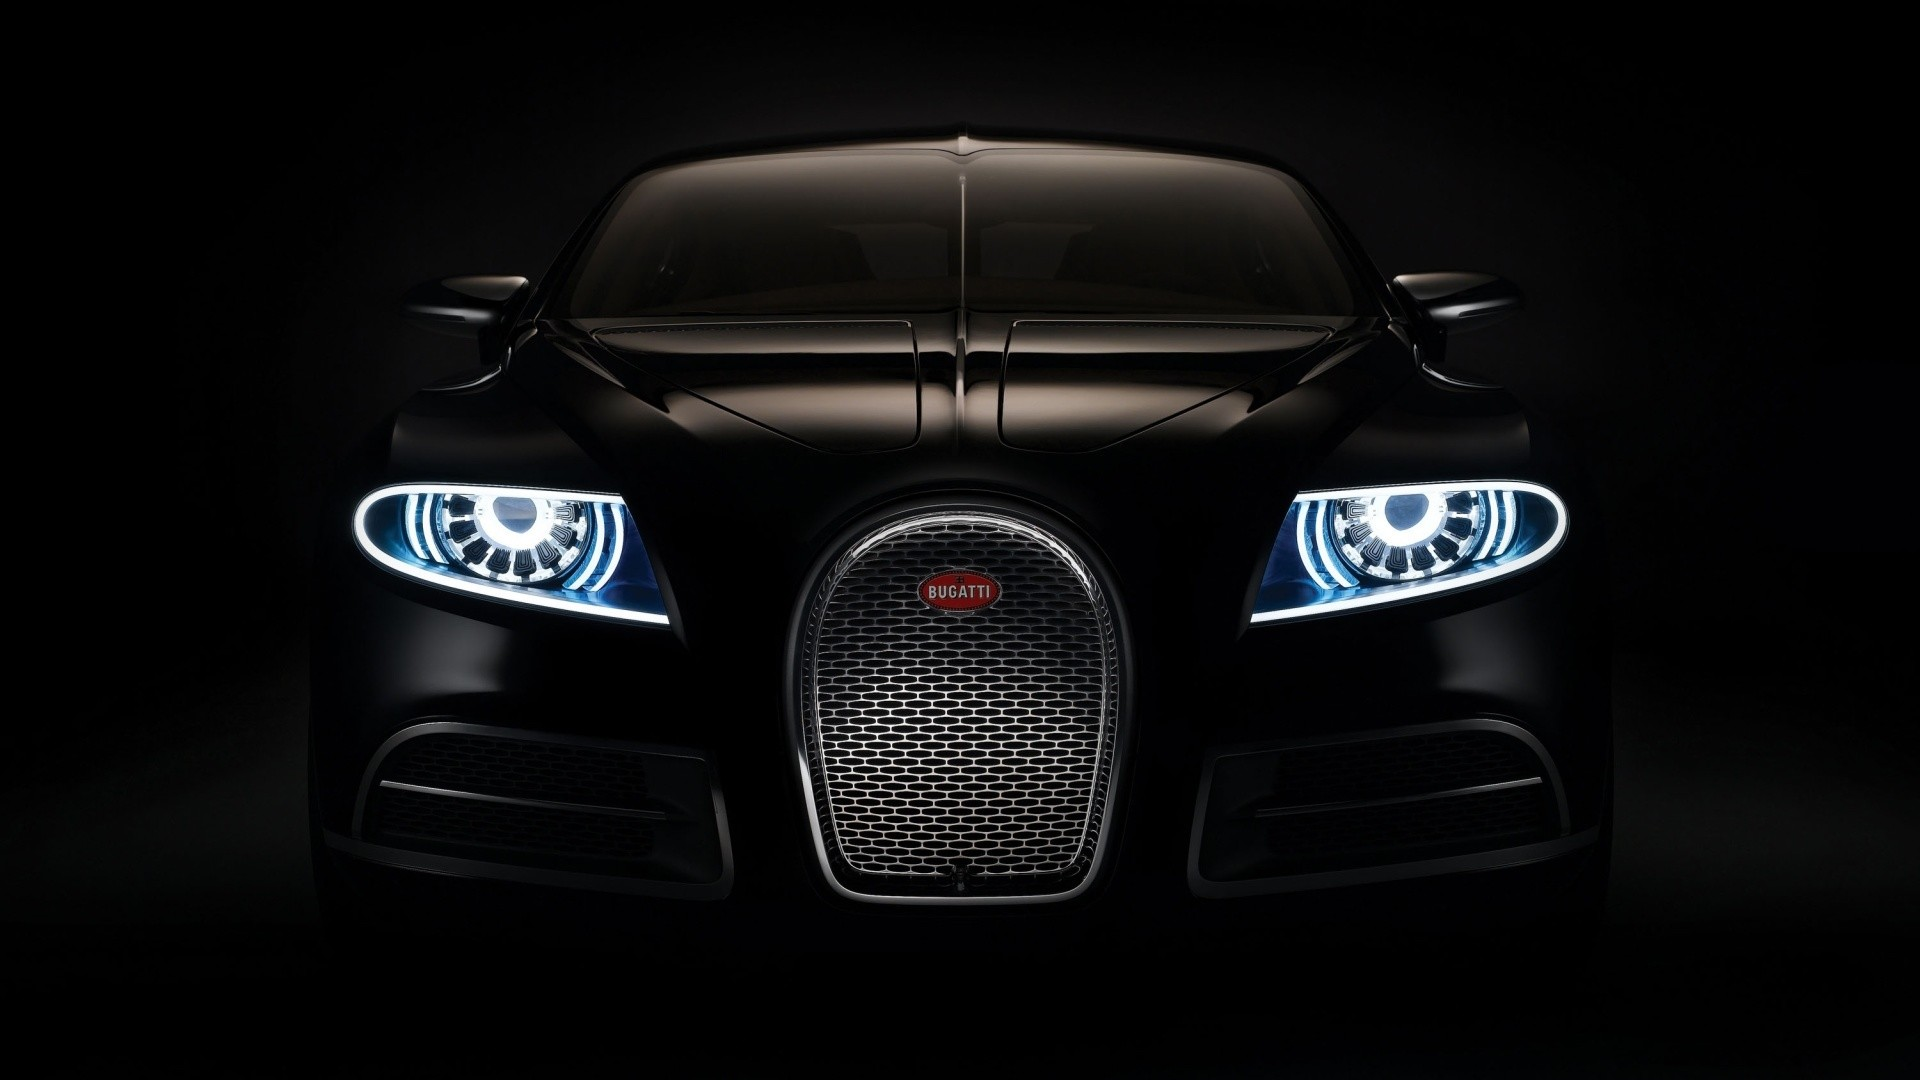 1920x1080 supercar-wallpapers-bugatti-1